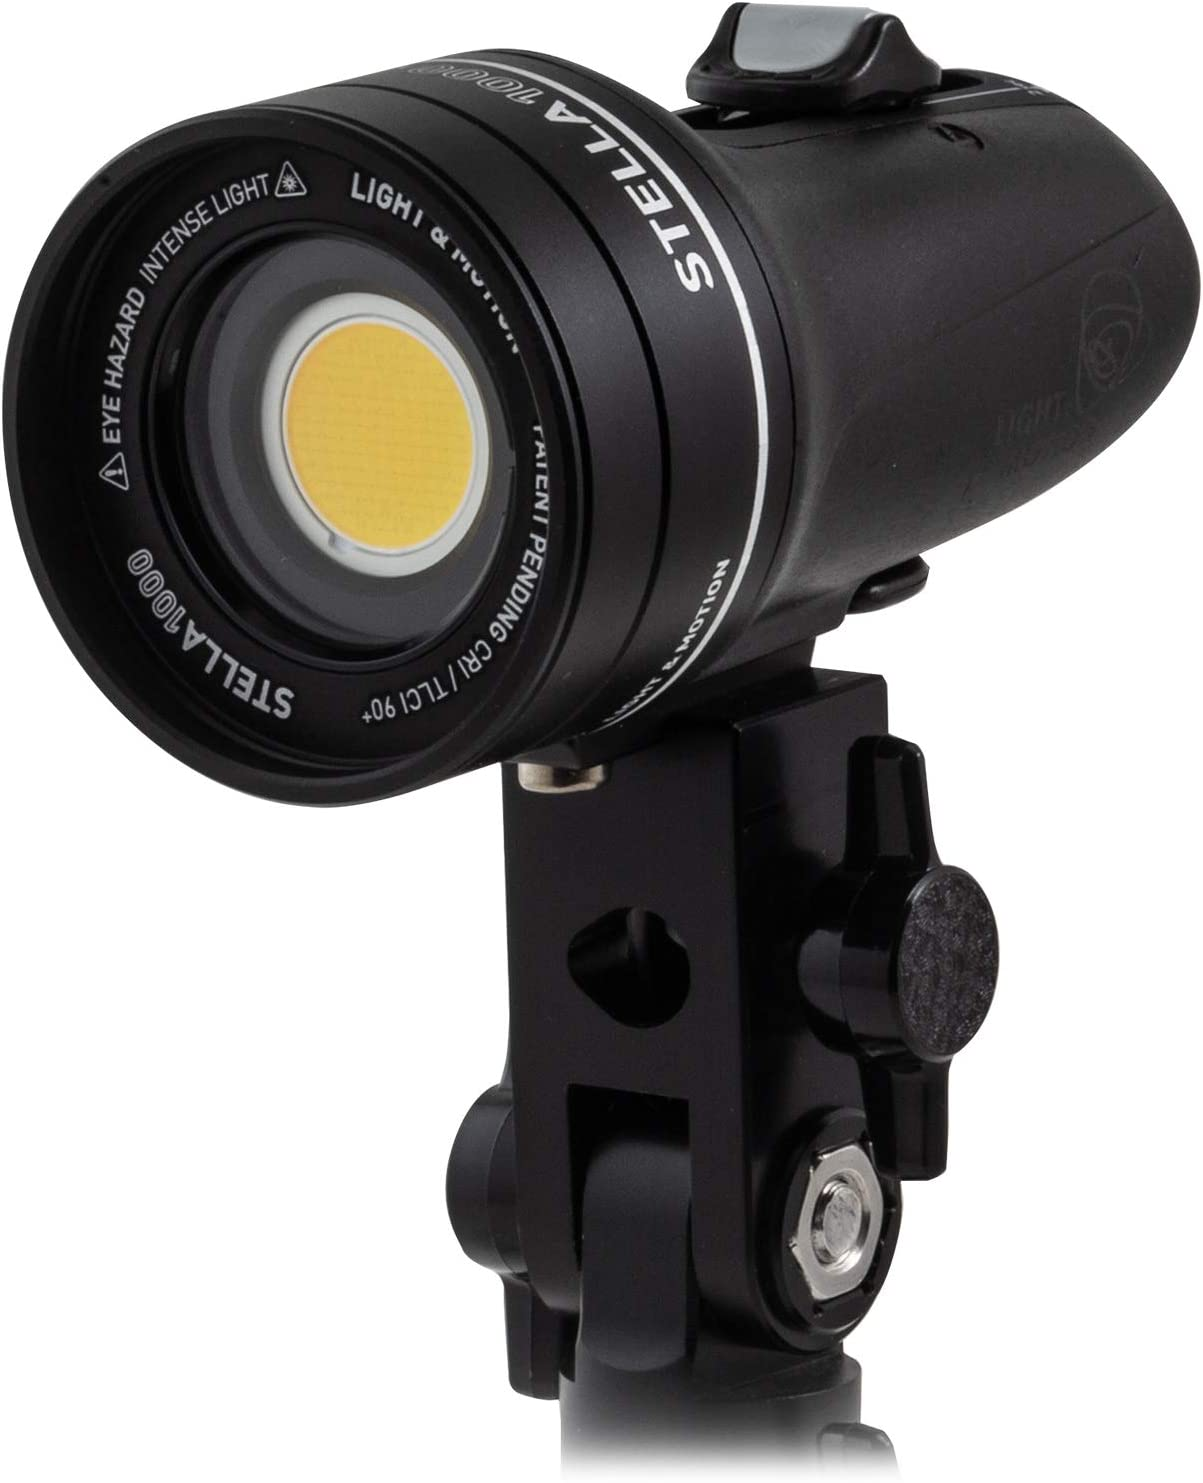 Light and Motion Stella CL 1000/2500, Black, Small